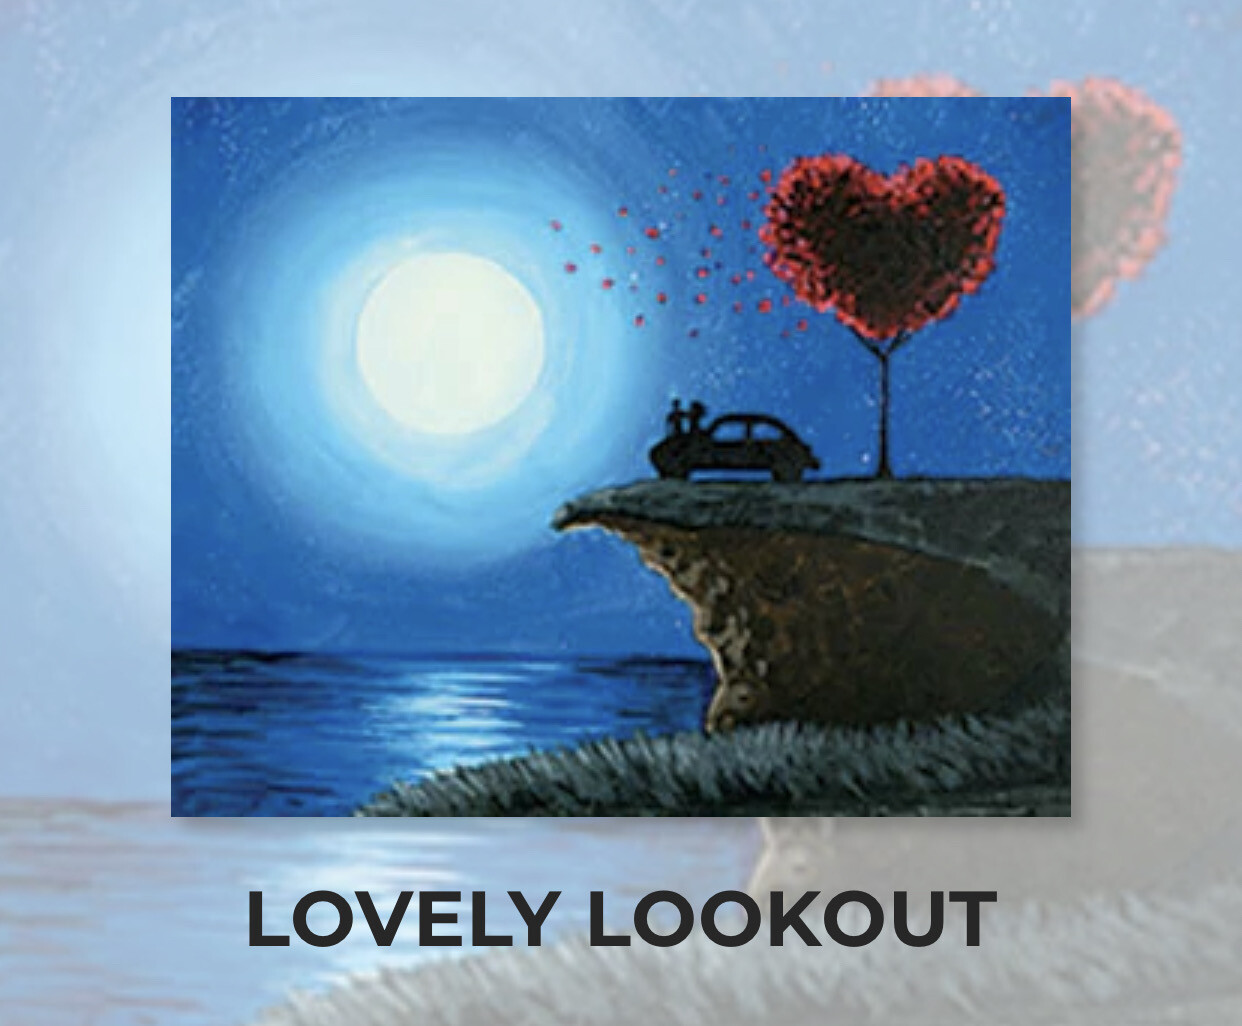 Lovely Lookout ADULT Acrylic Paint On Canvas DIY Art Kit - 3 Week Special Order